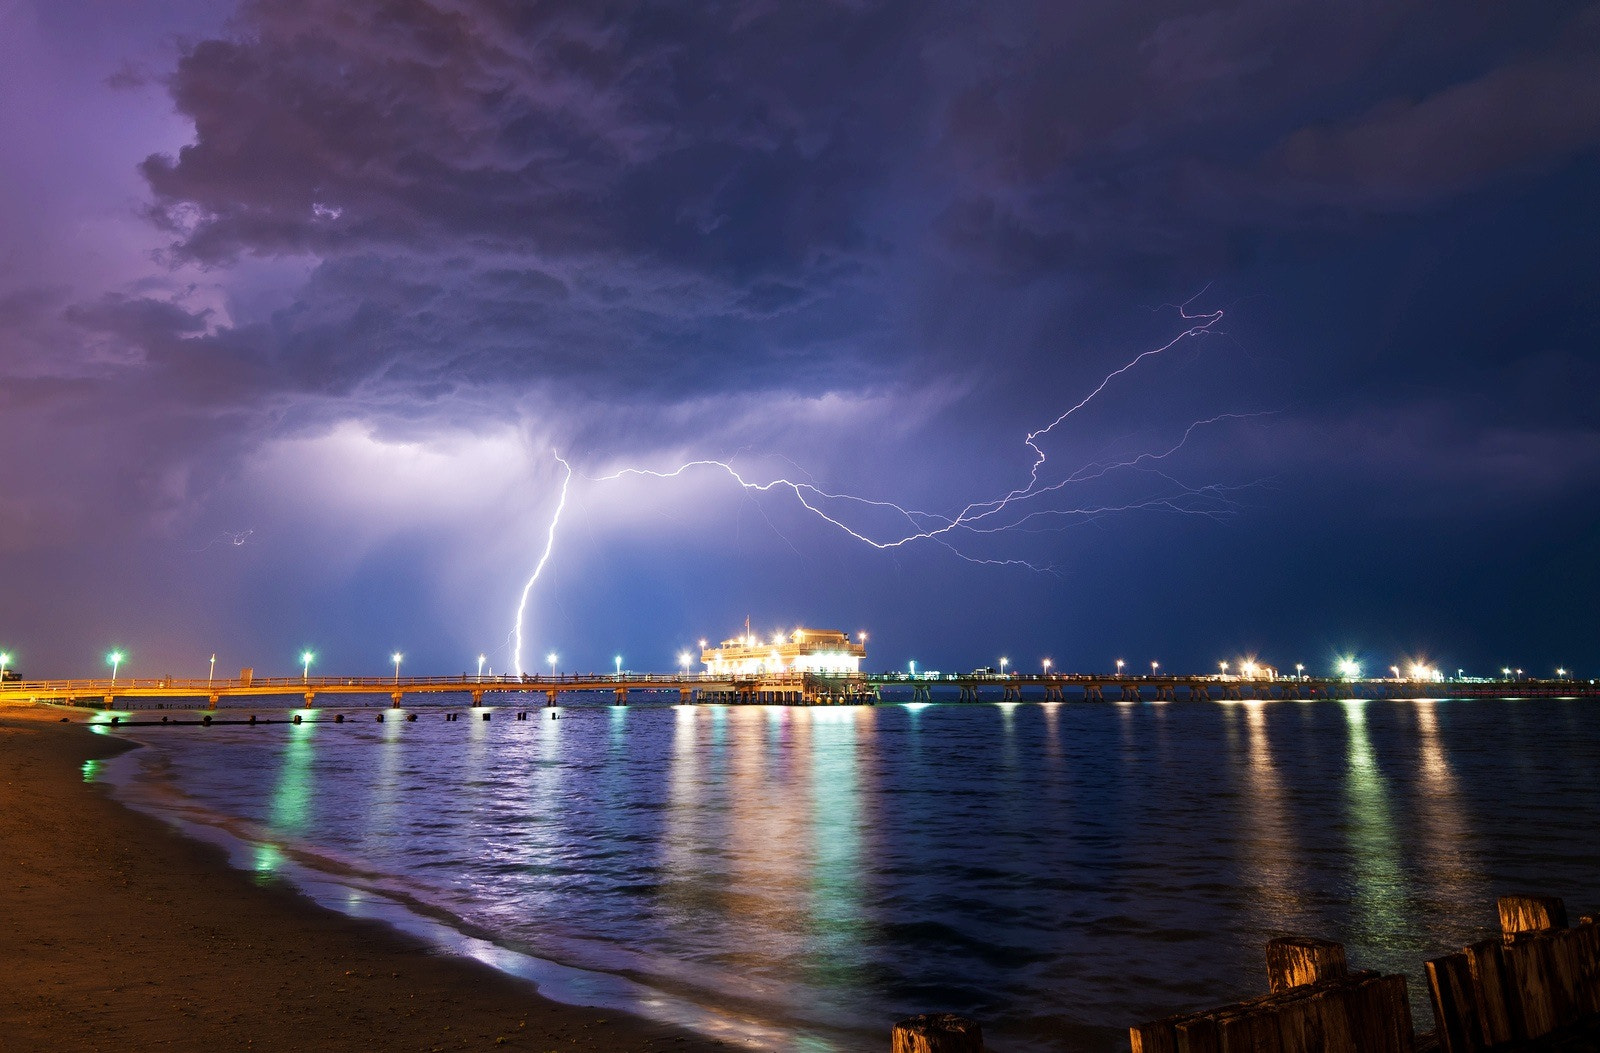 Photograph Ocean View Lightning by Bill Dickinson on 500px